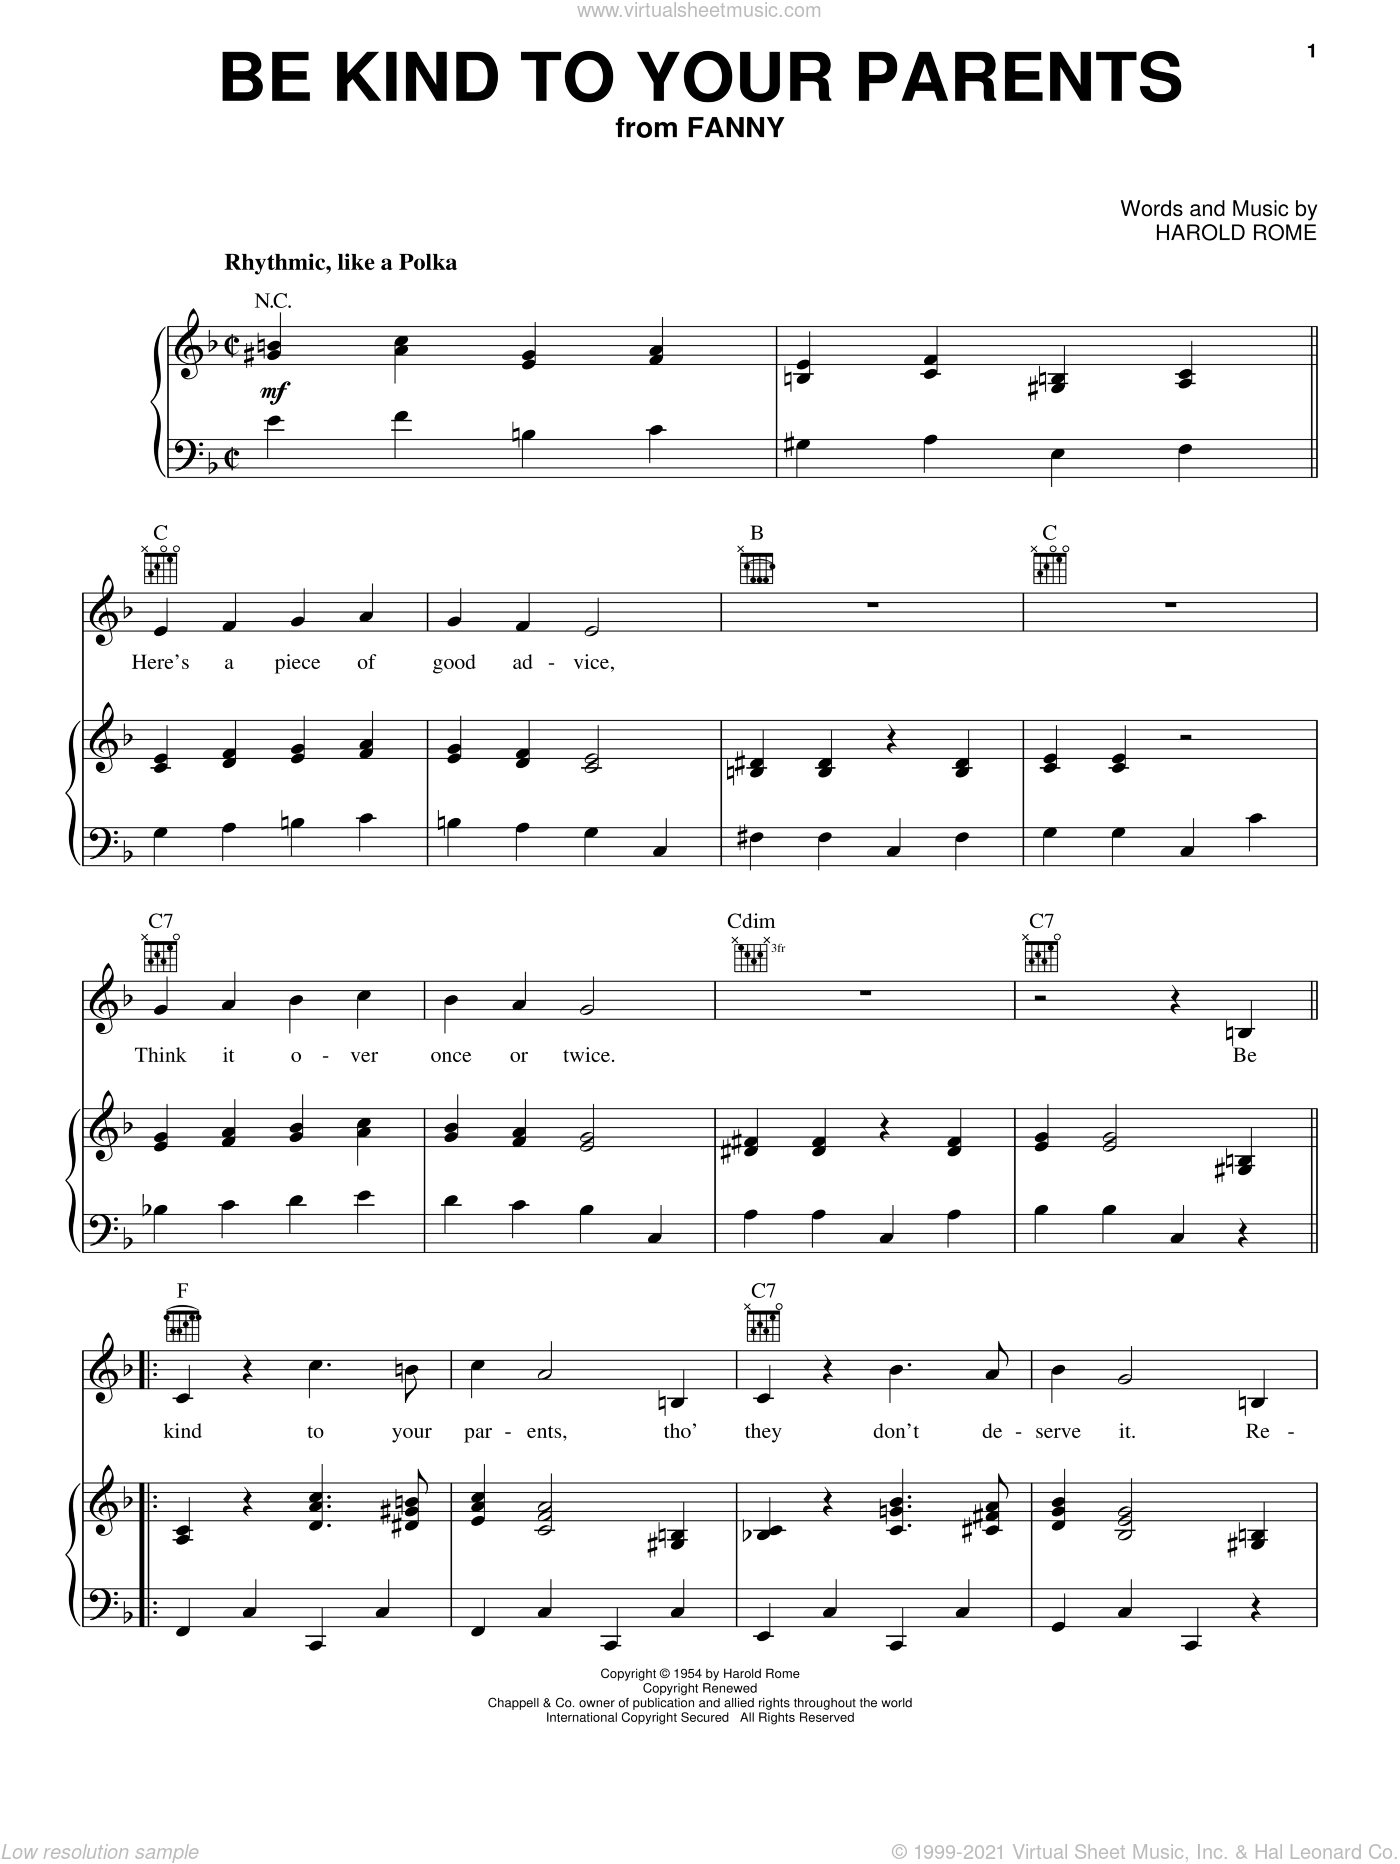 Be Kind To Your Parents sheet music for voice, piano or guitar by Harold Rome, intermediate skill level